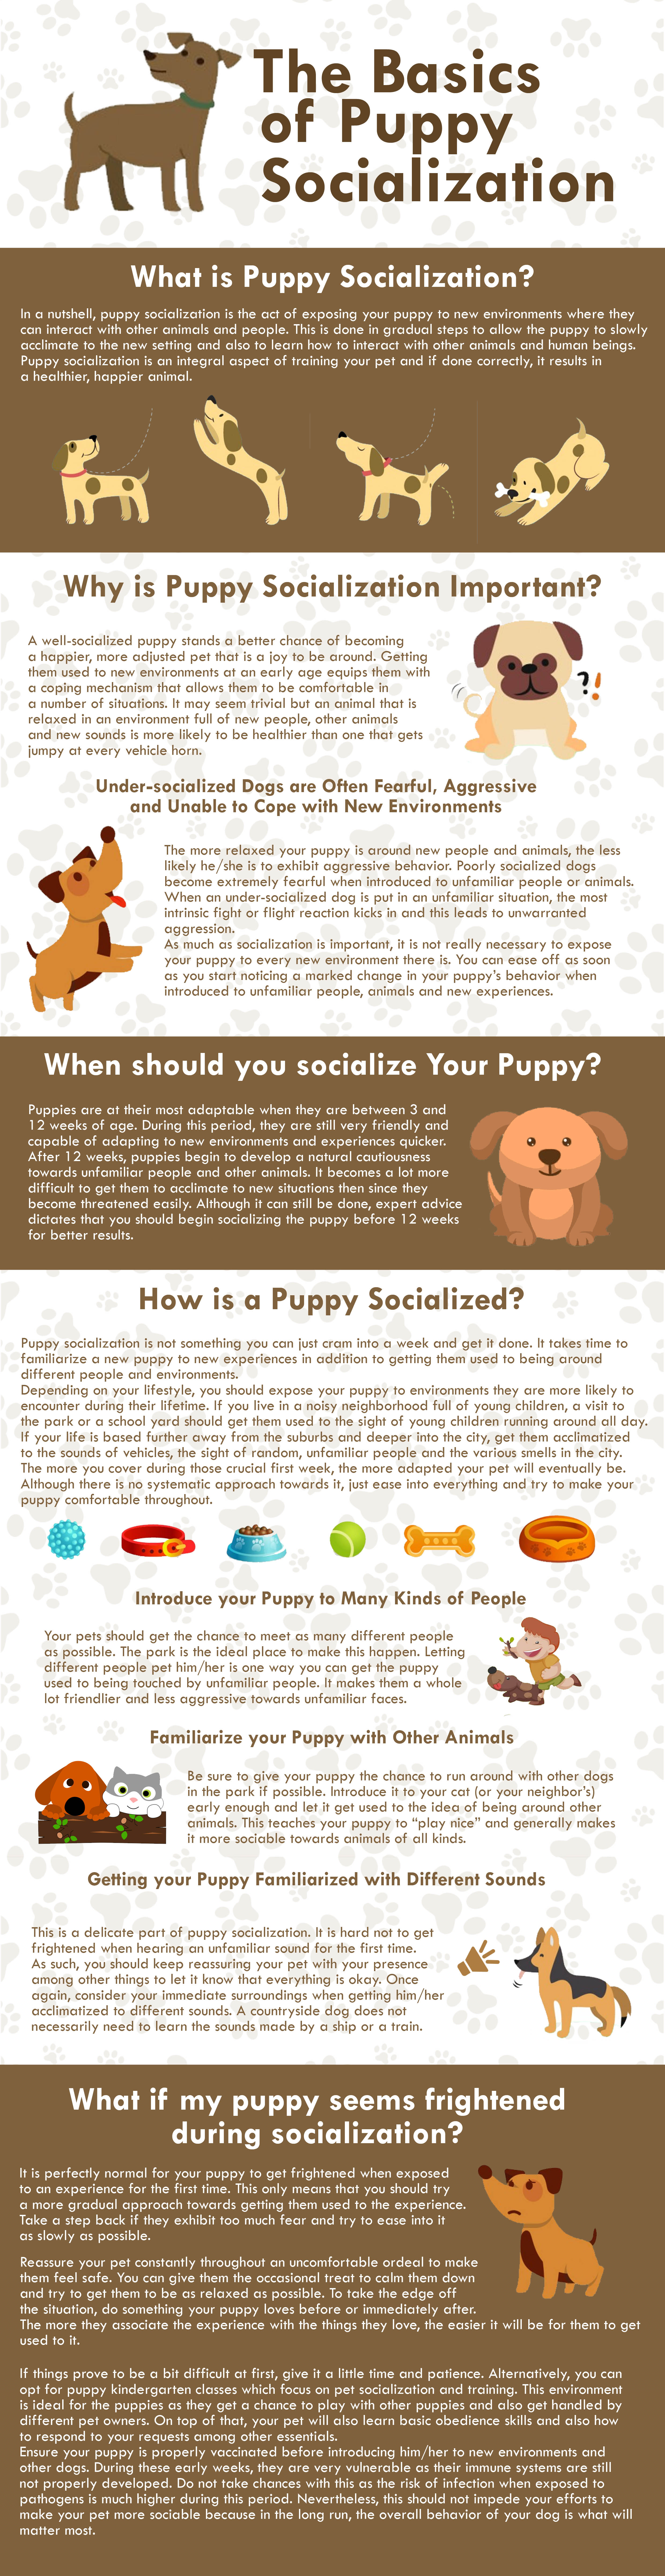 Puppy Socialization Infographic